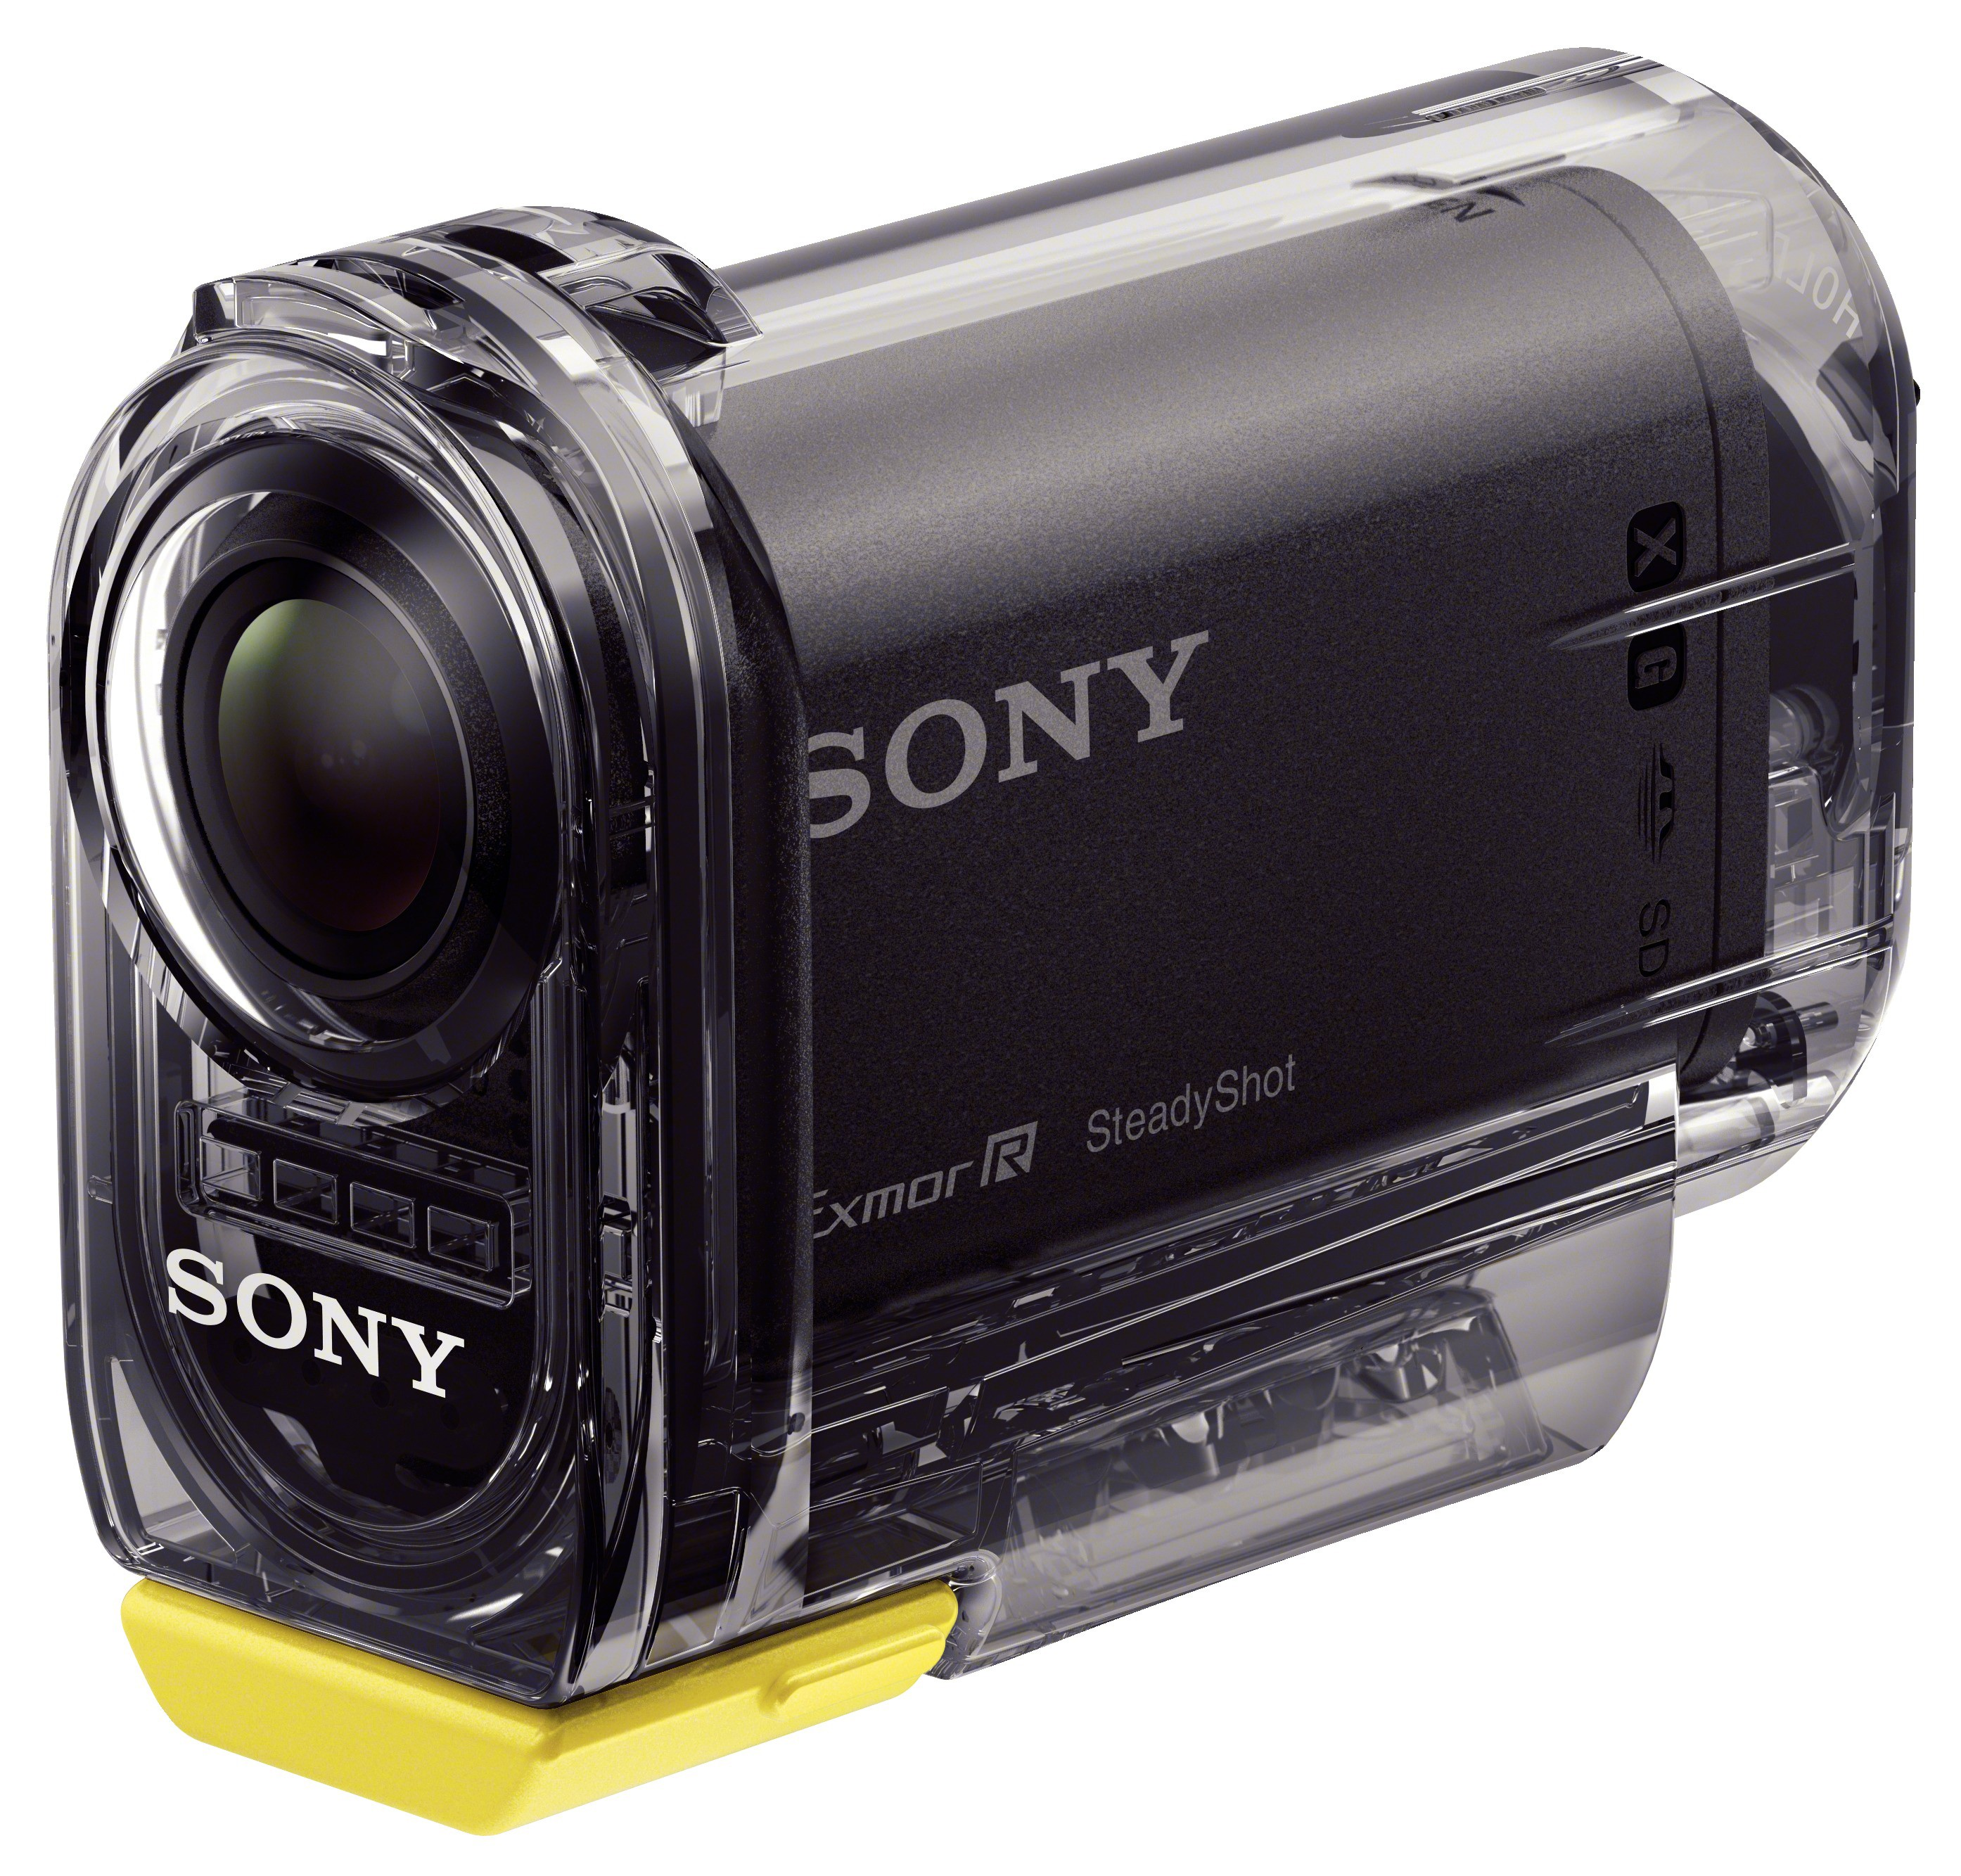 SPKAS1.SYH : Sony vanntett kamerahus for HDR-AS15